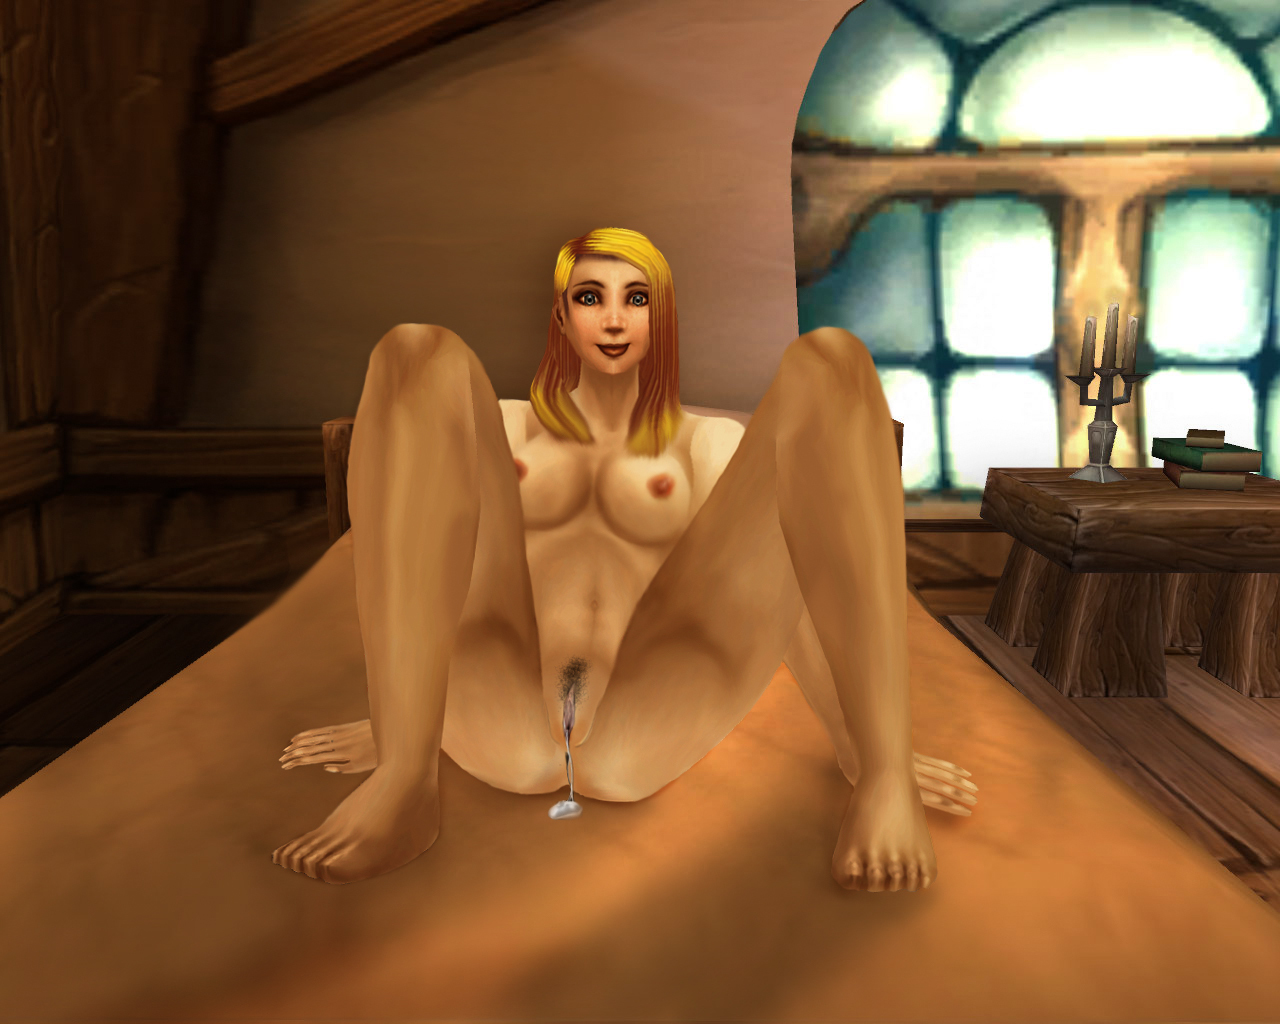 World of Porncraft 2 nude patch naked download